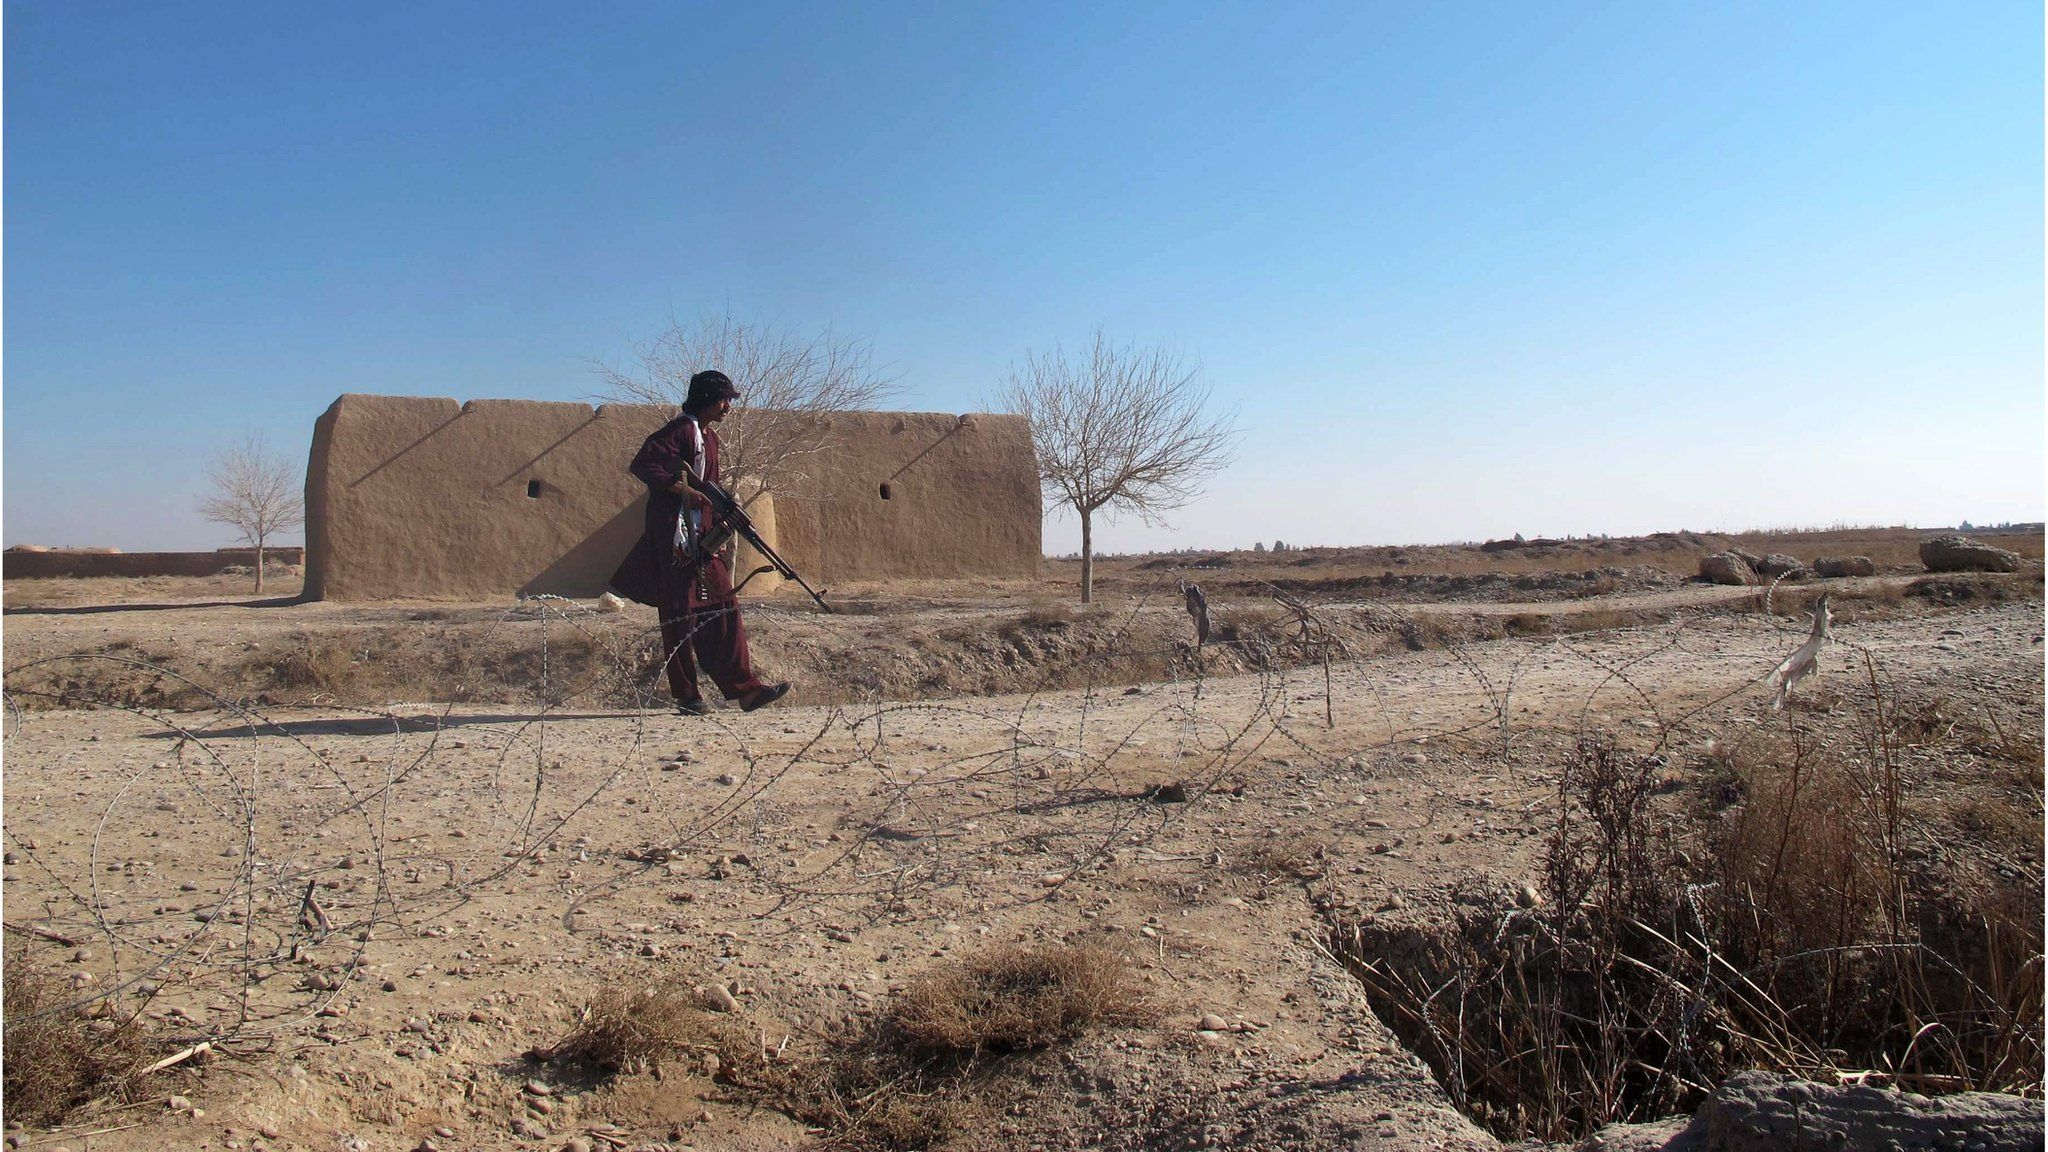 A member of the Afghan Local Police (ALP) forces stands guard on a roadside in the Nawar area of Marjah district, Helmand province, Afghanistan (23 December 2015)